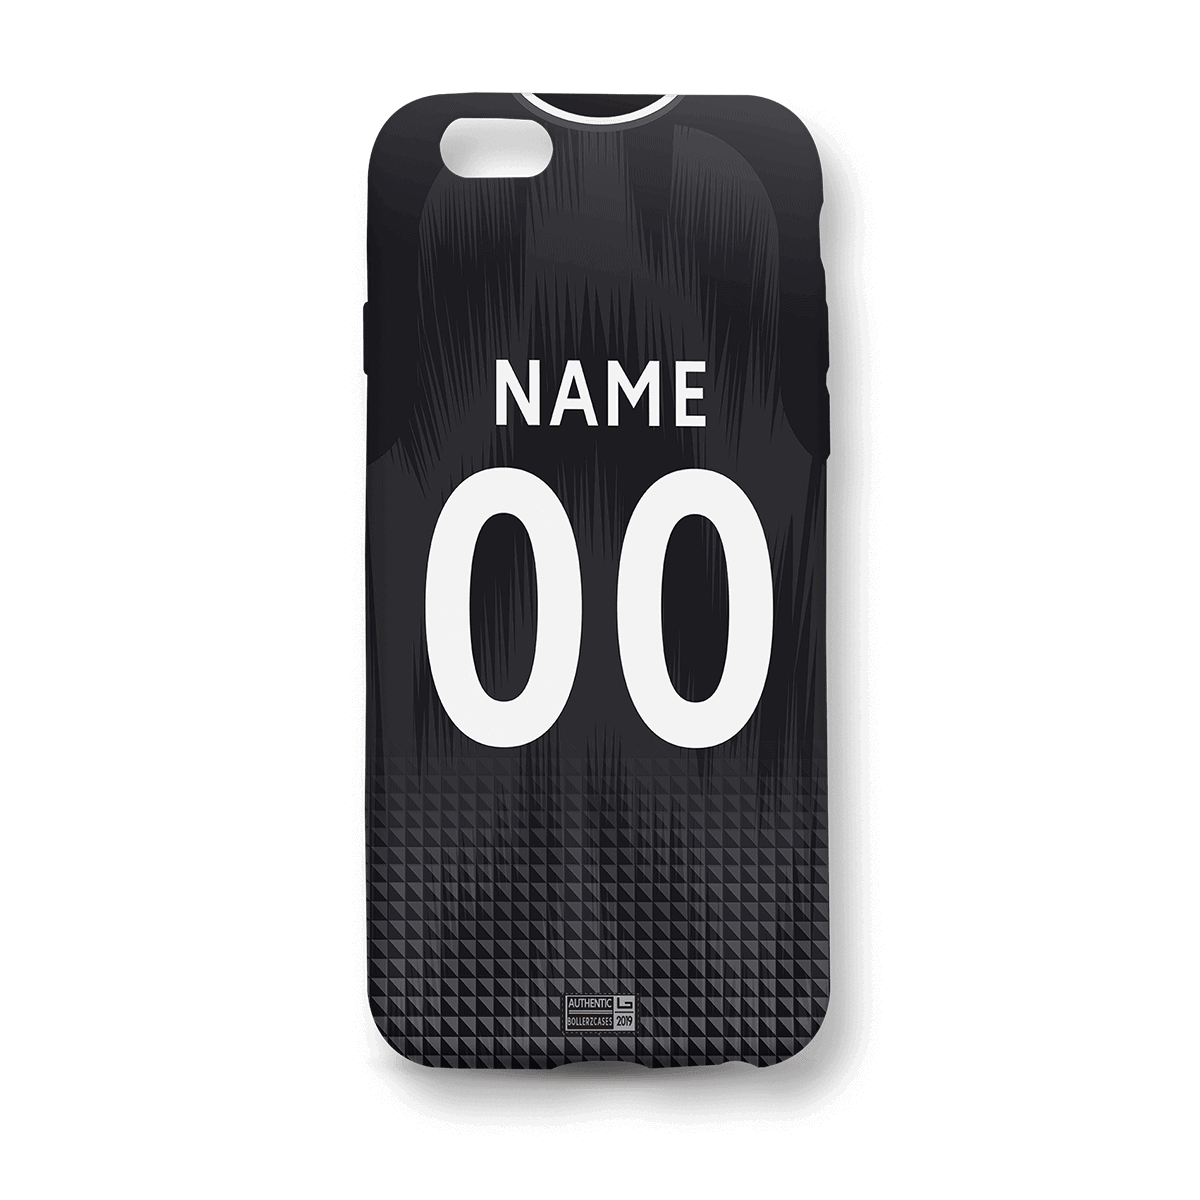 Leicester City 19-20 Away kit phone case